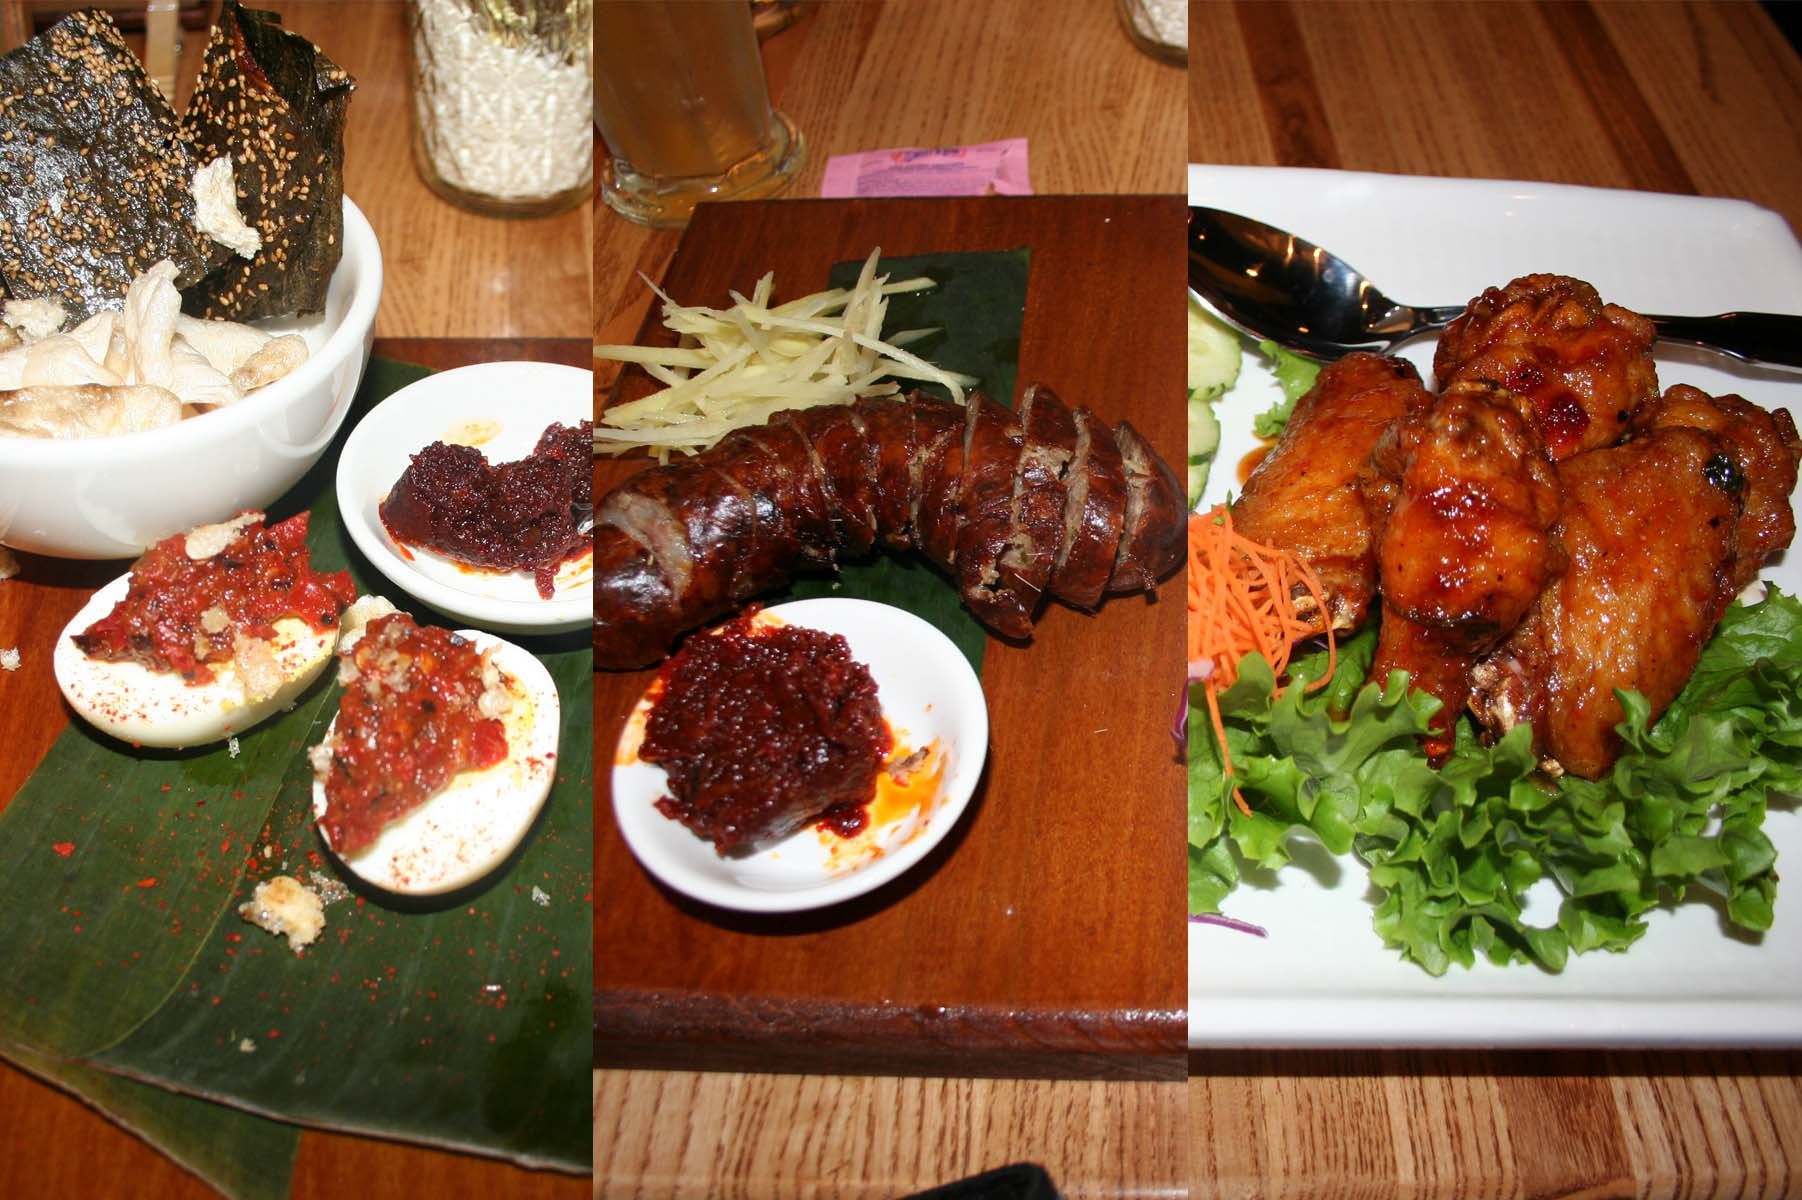 Appetizers (l to r) include Lao deviled eggs, seaweed and pork rinds; saioua pork sausage and chuenh peek gai chicken wings. (Photos: Mark Heckathorn/DC on Heels)